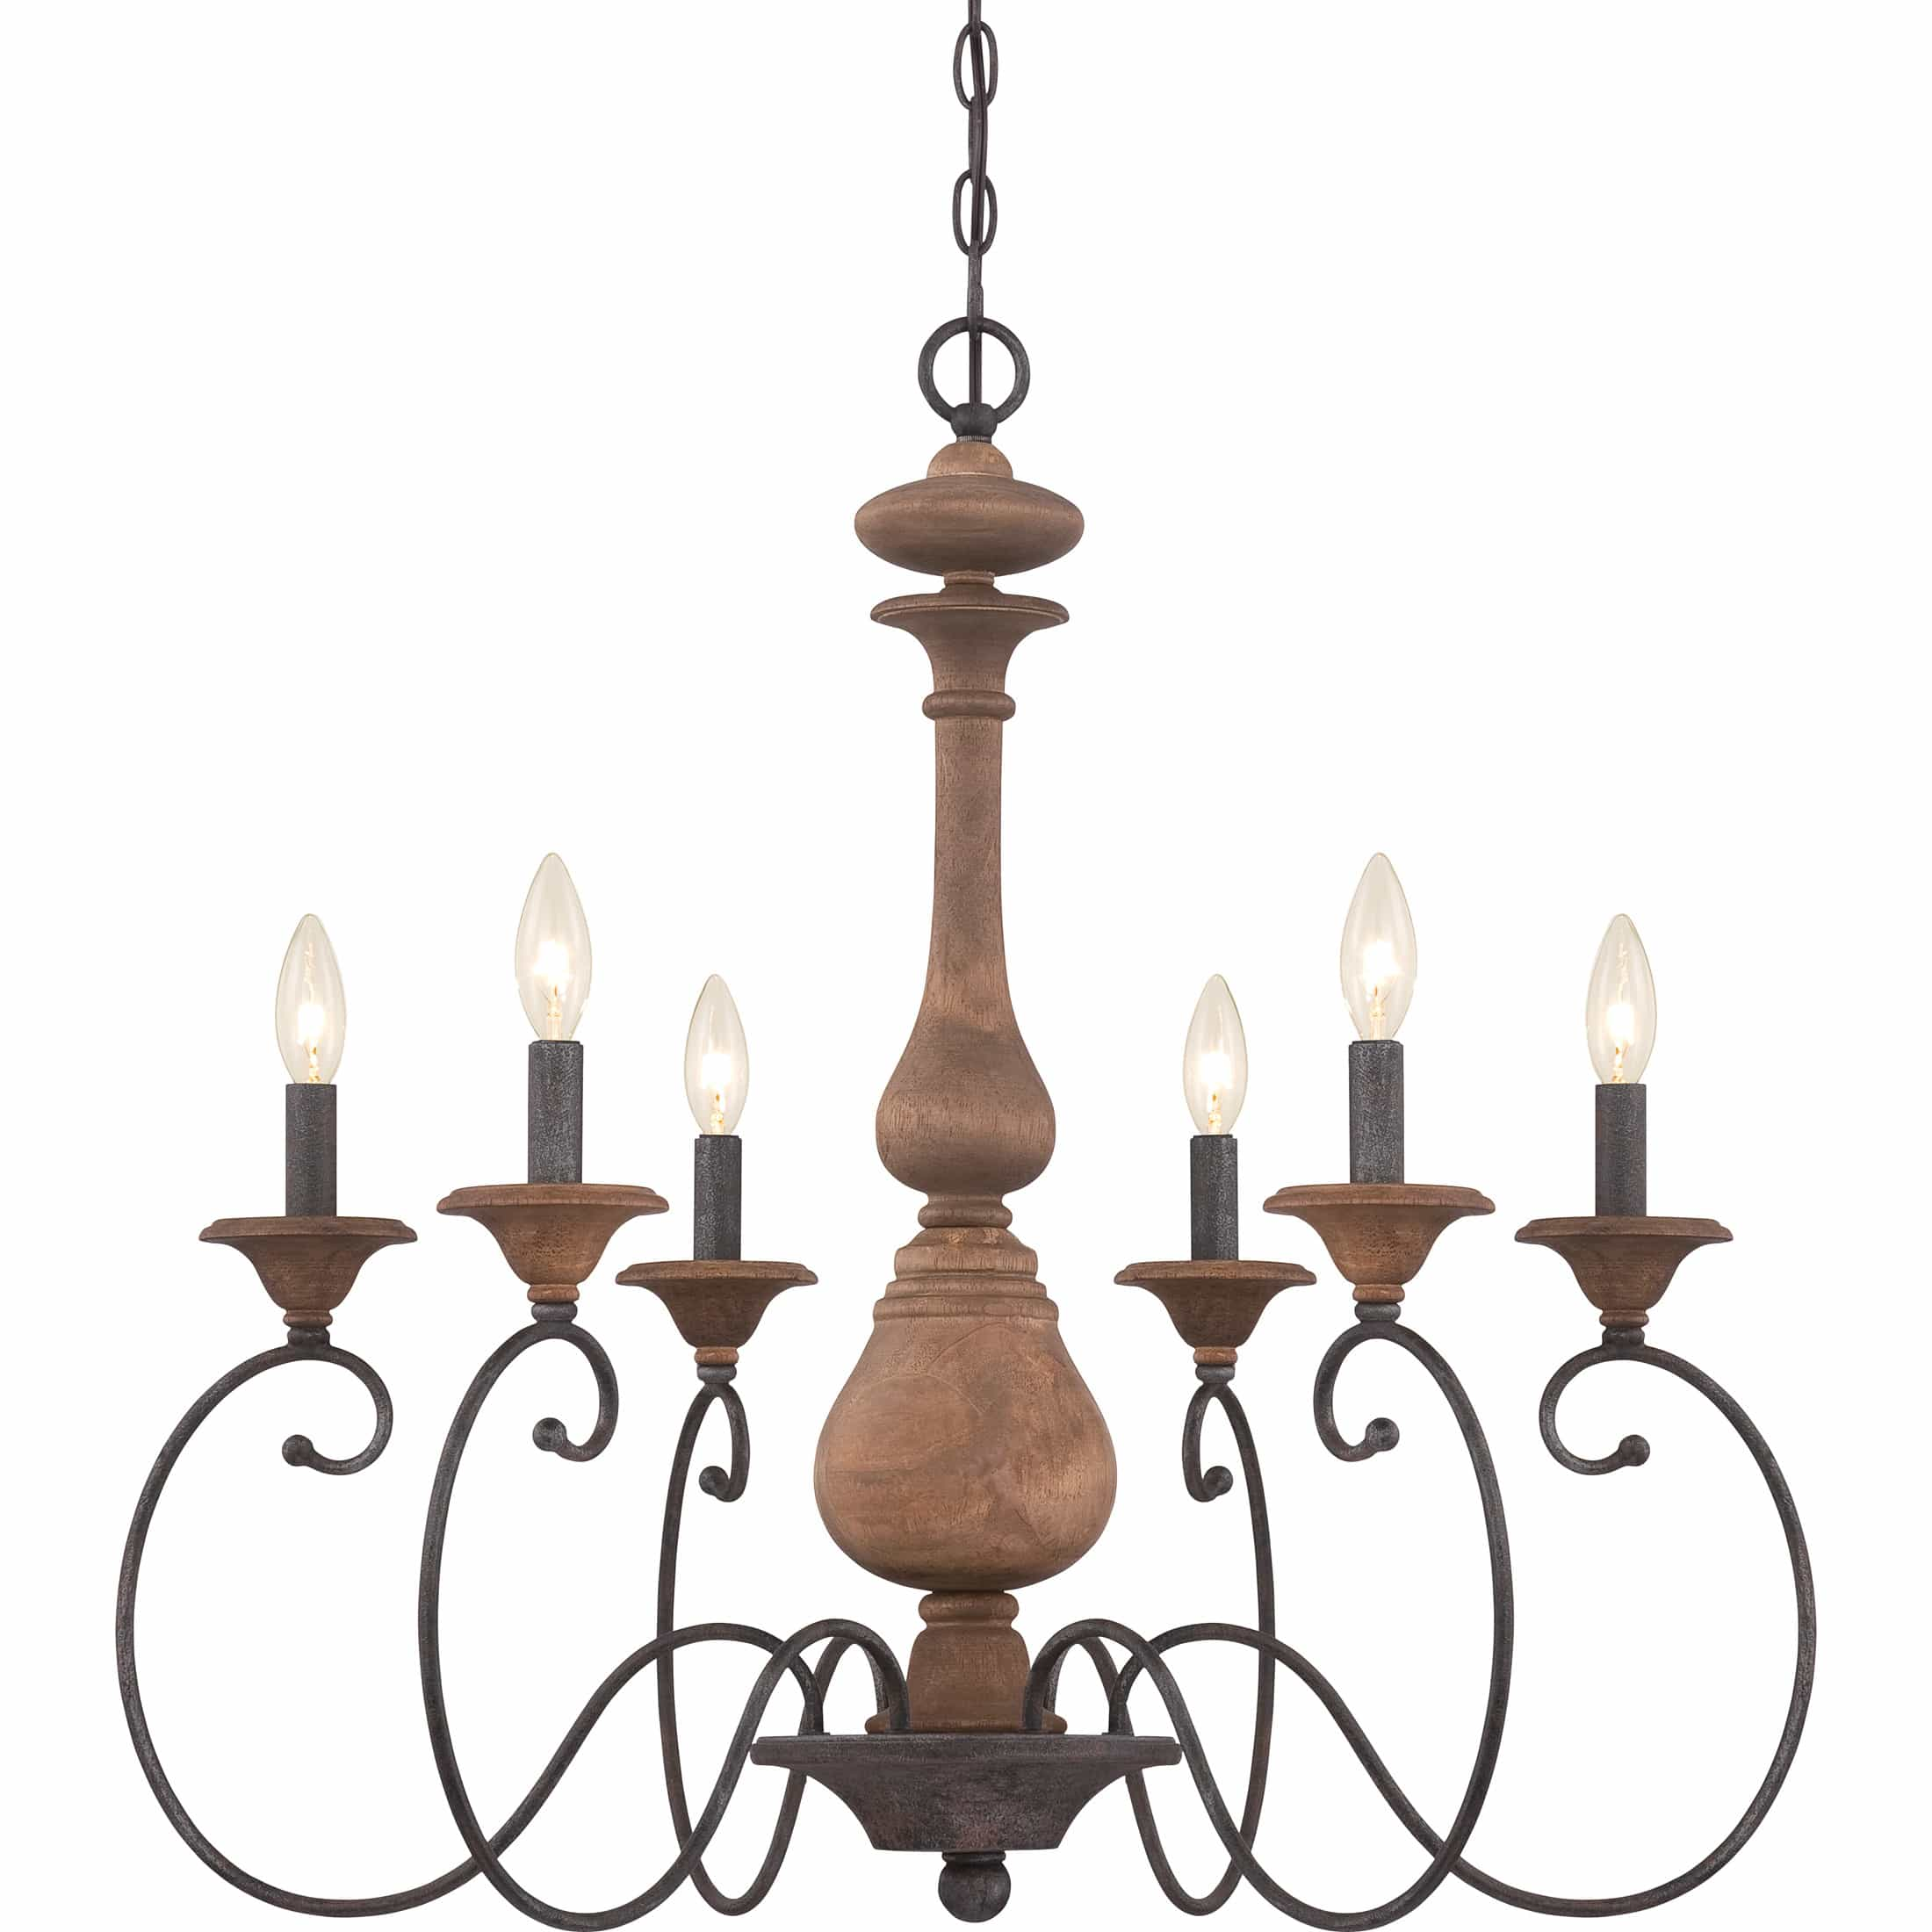 Fixer Upper Lights Get the fixer upper look with this wood and iron chandelier